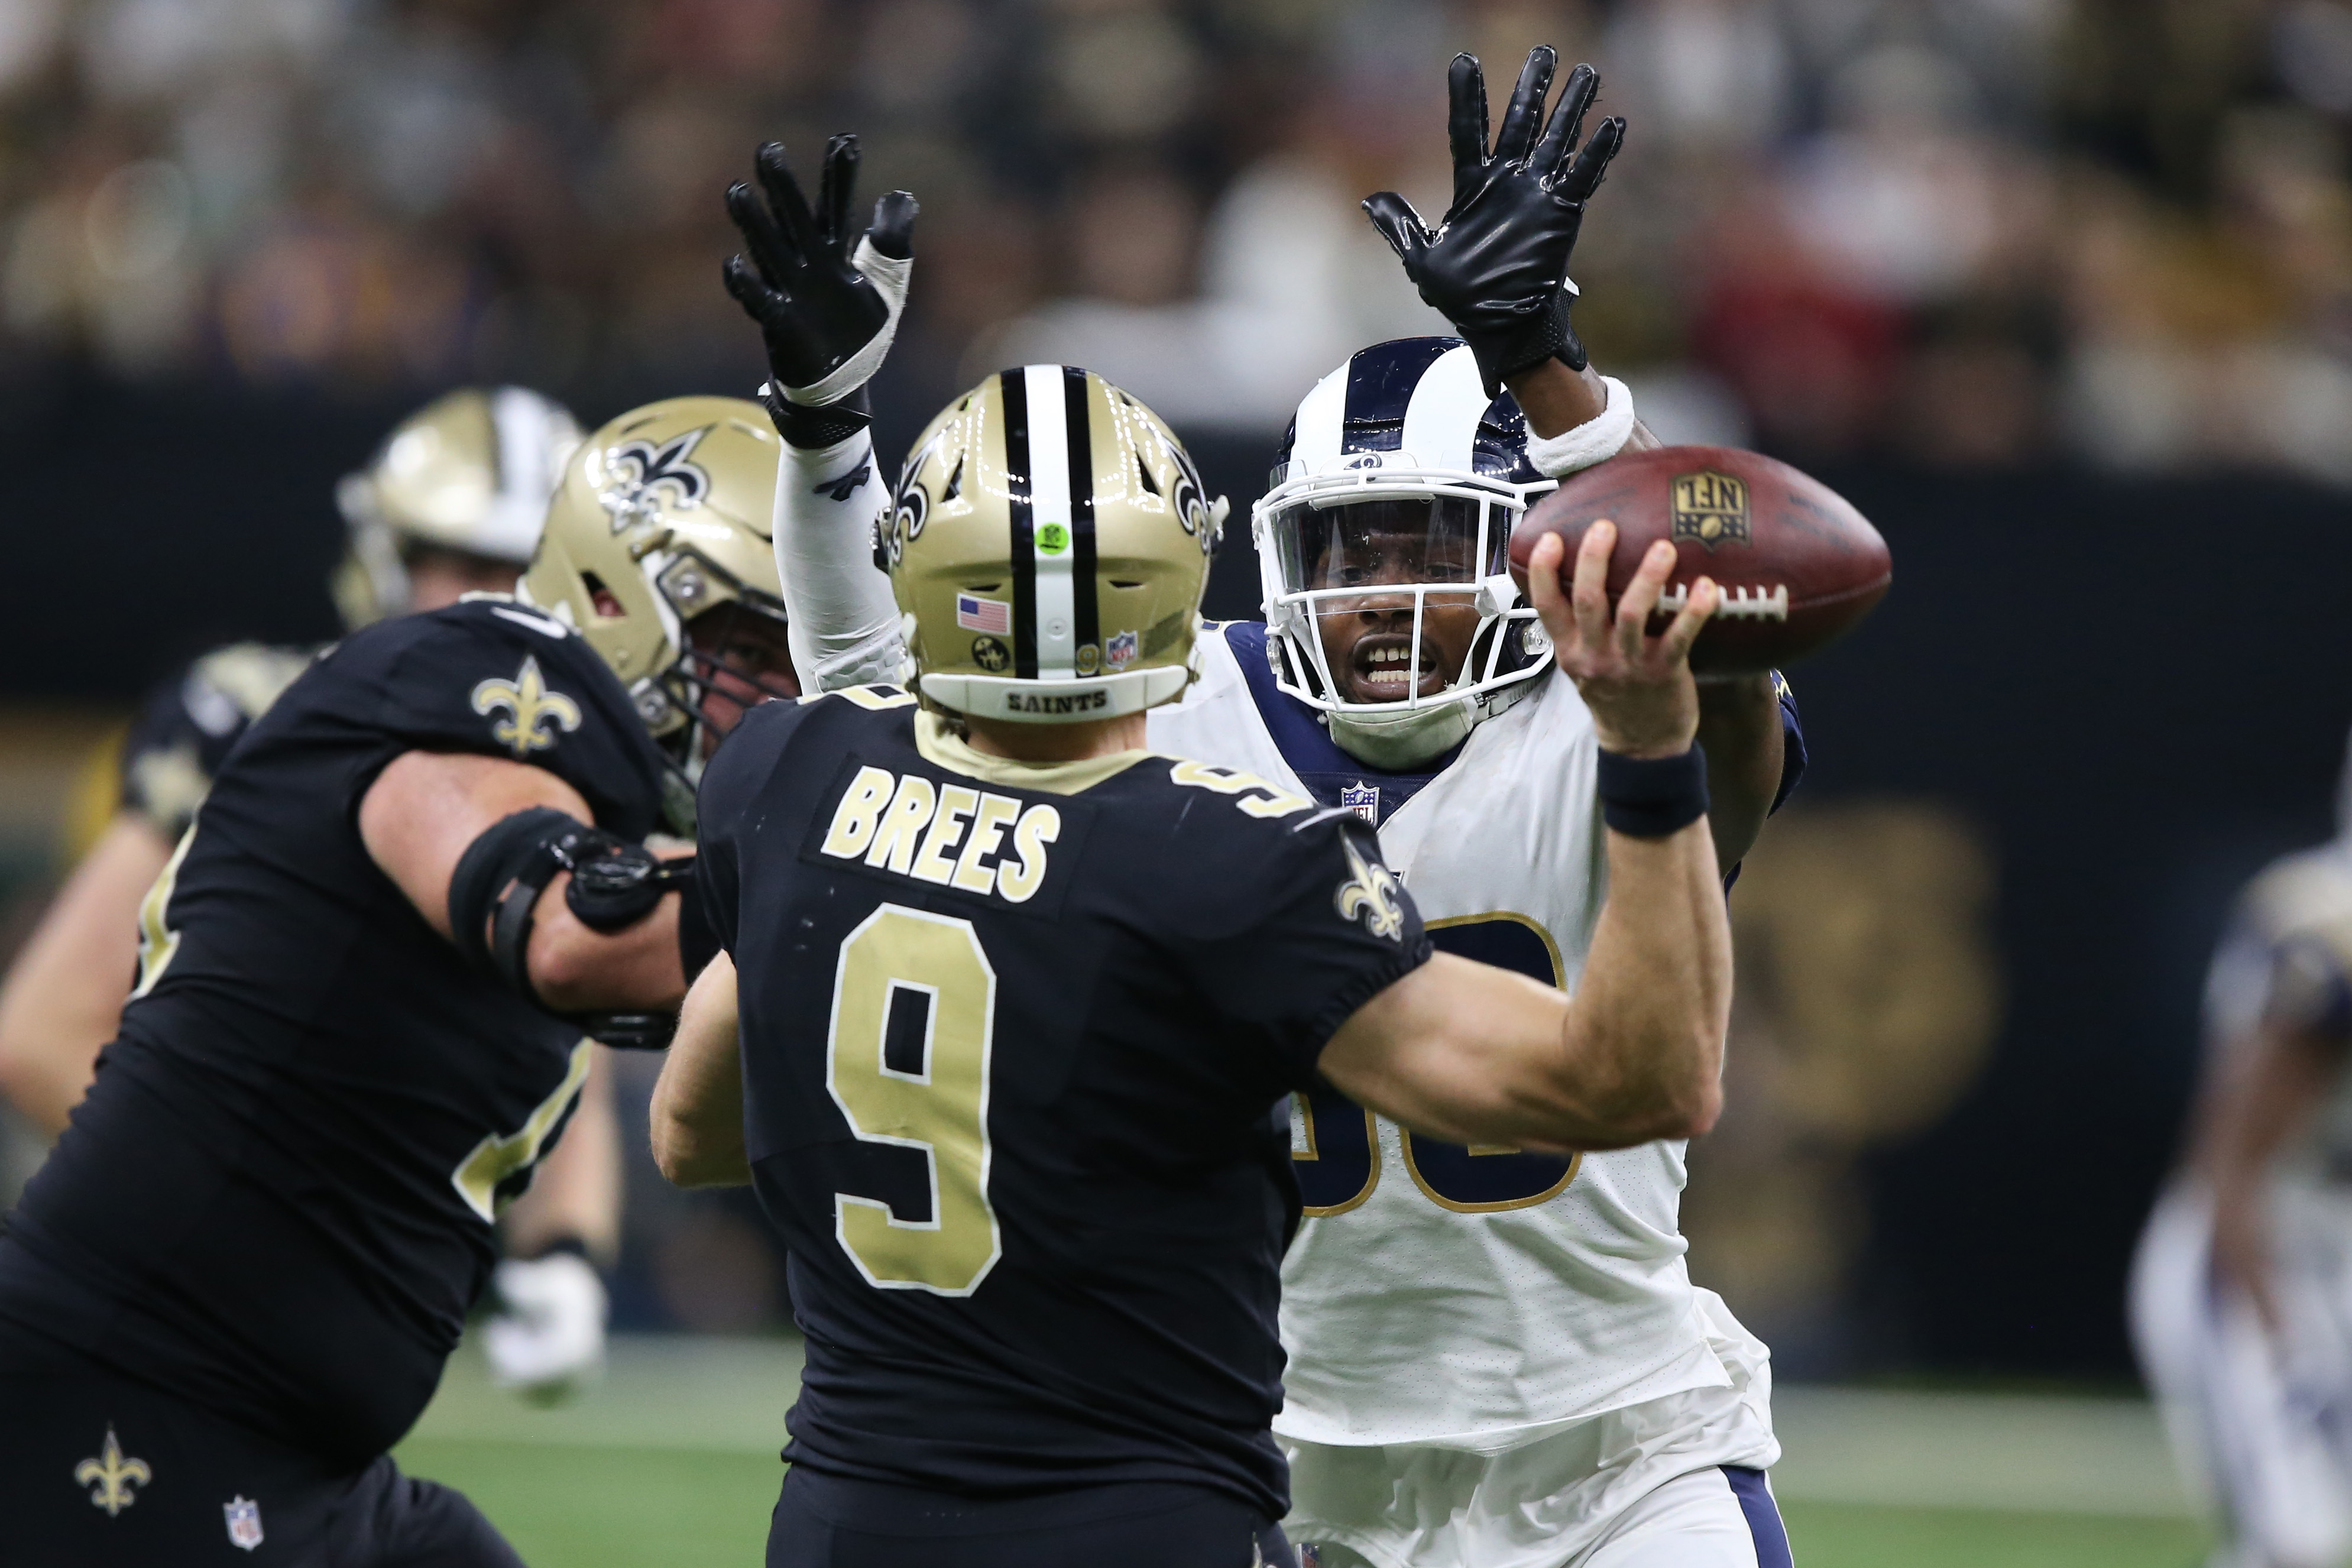 Los Angeles Rams EDGE Dante Fowler, Jr., pressures New Orleans Saints QB Drew Brees during overtime of the NFC Championship, Jan. 20, 2019.